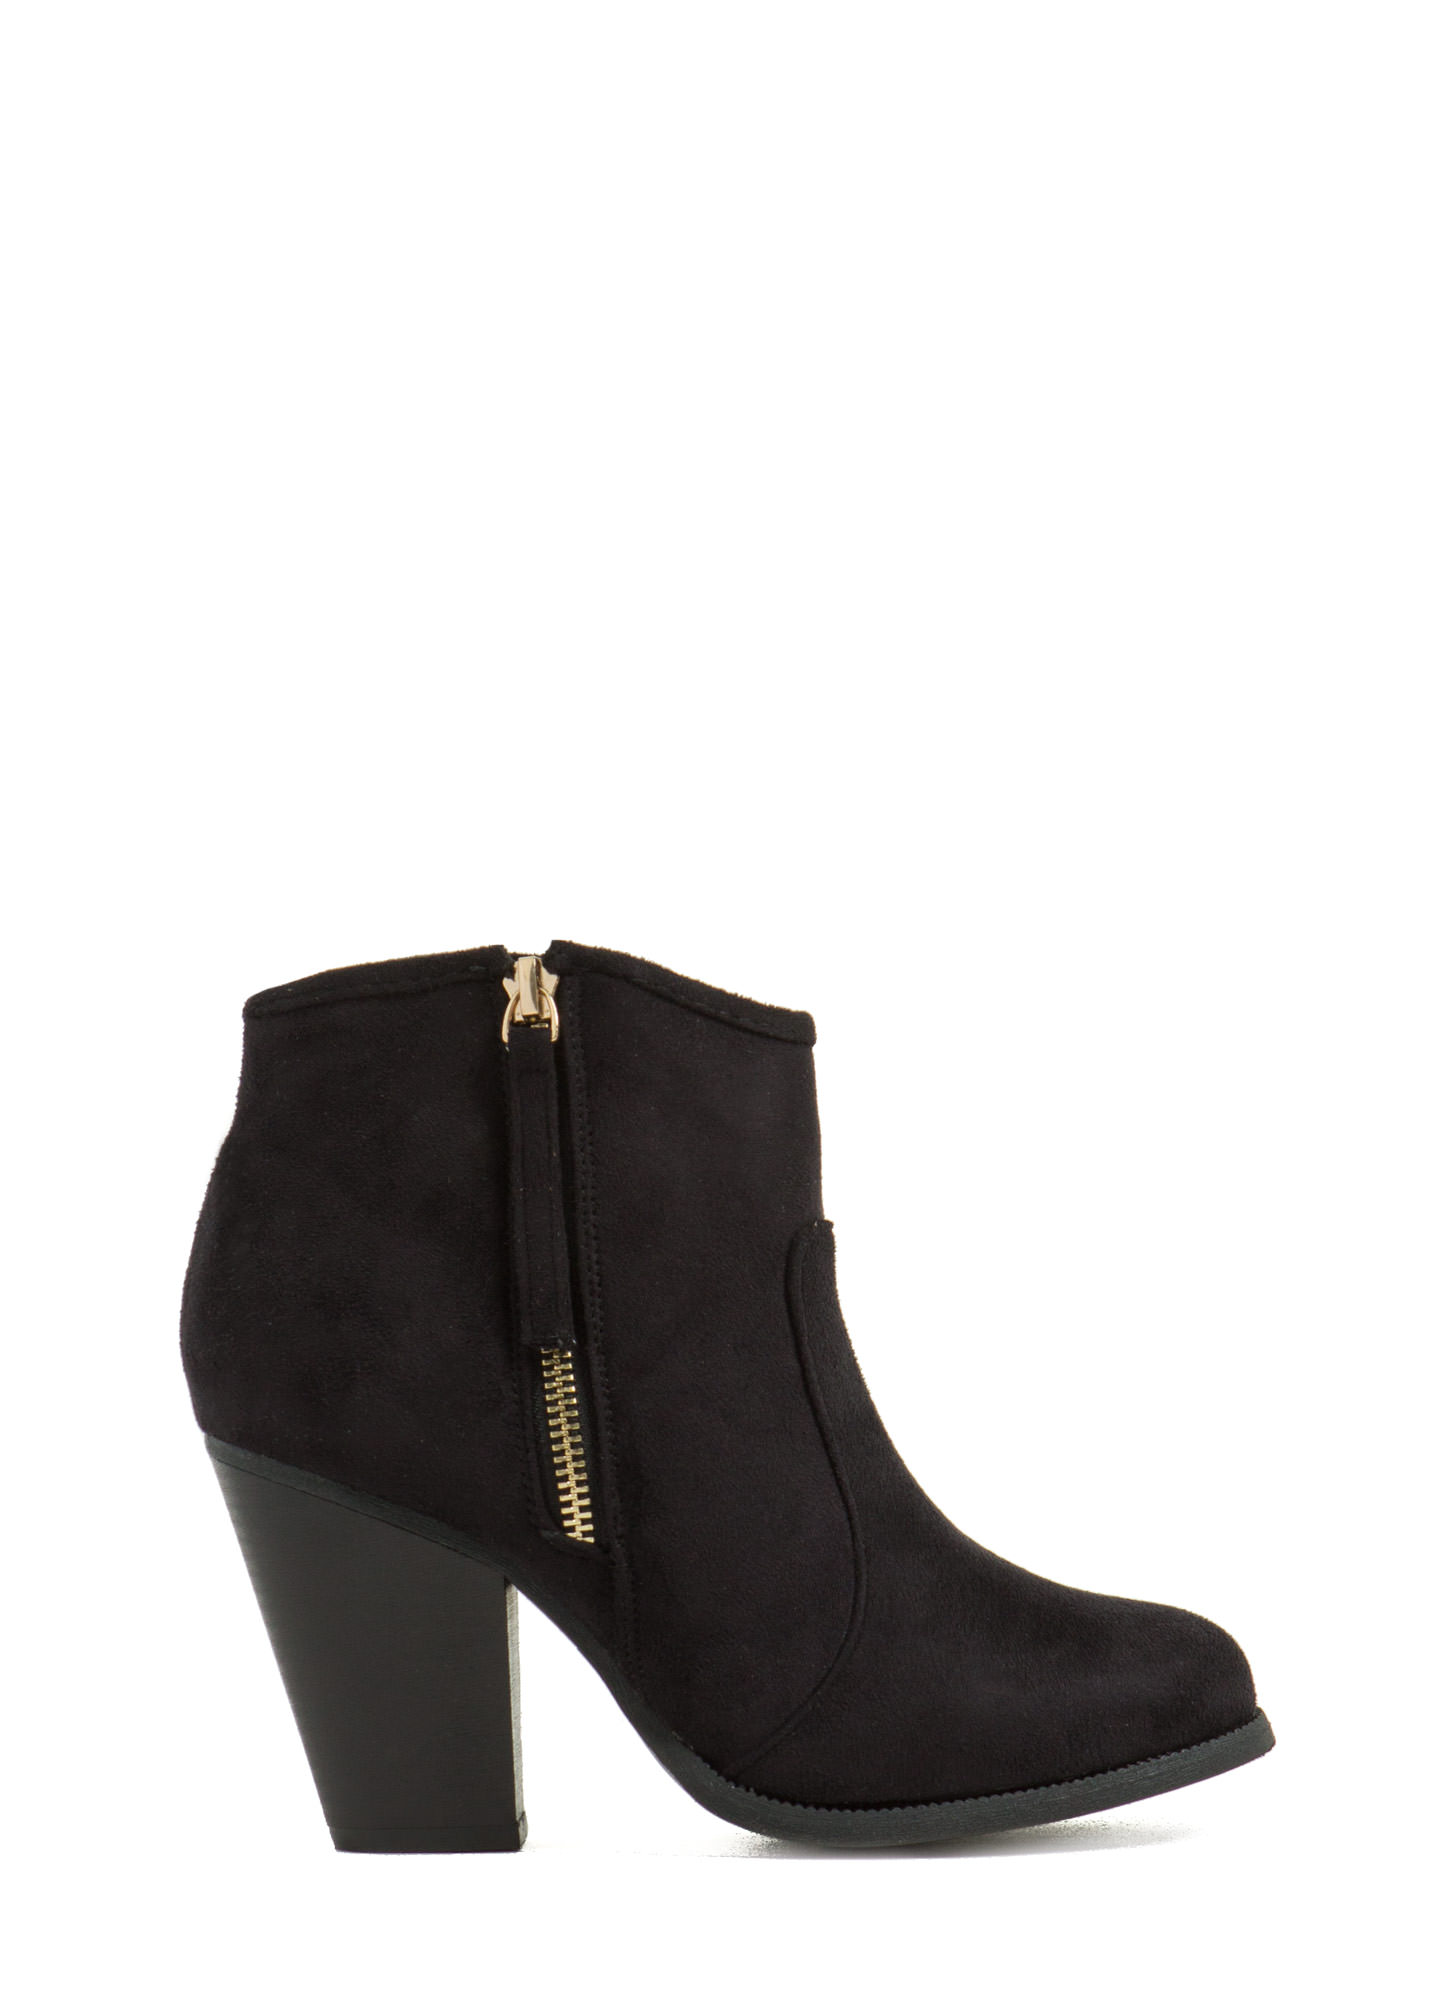 Zipped To The Top Chunky Booties BLACK